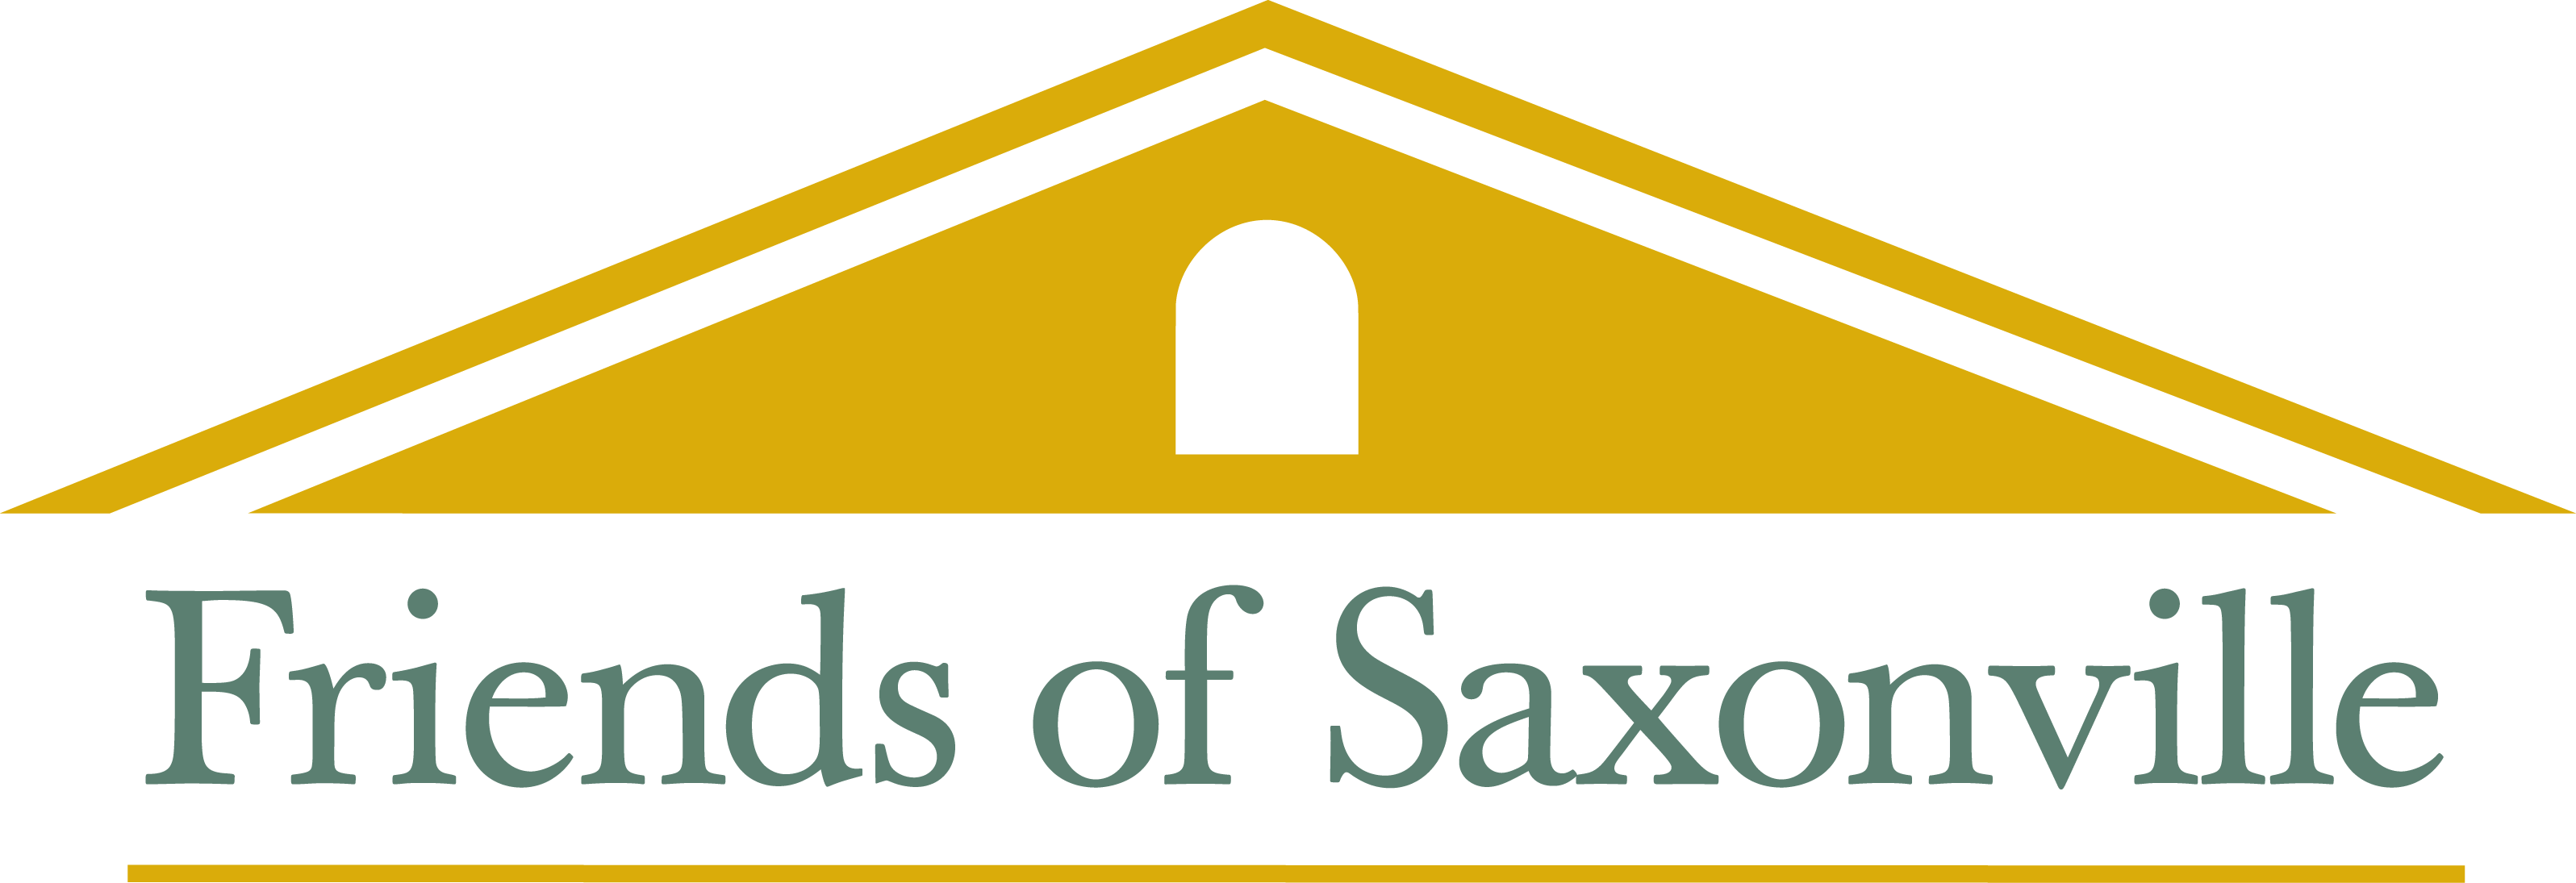 Friends of Saxonville